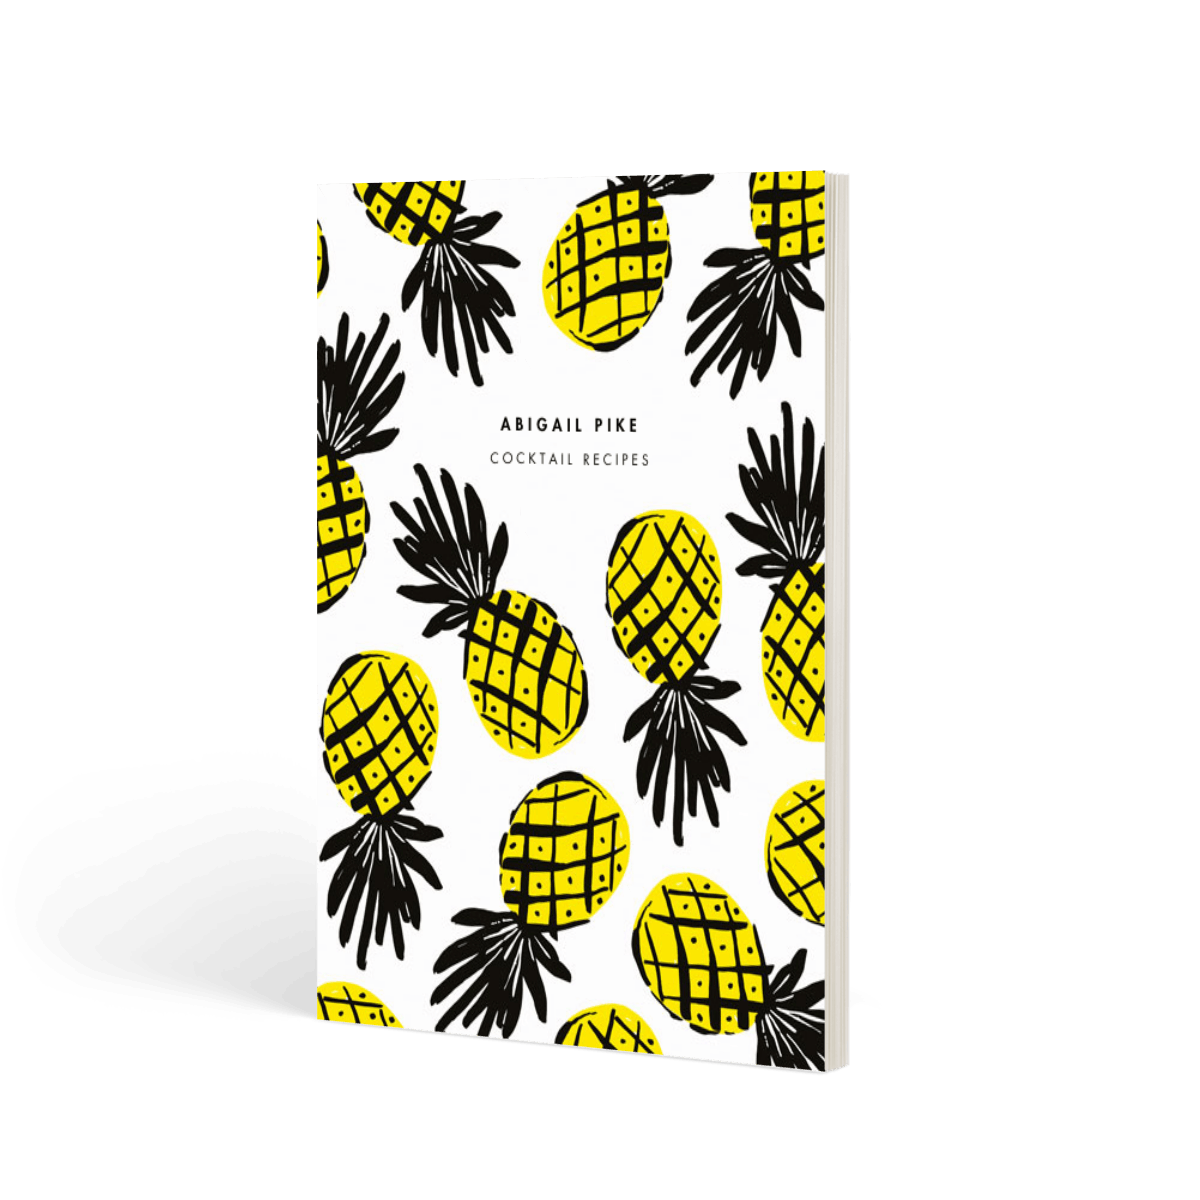 Https%3a%2f%2fwww.papier.com%2fproduct image%2f29506%2f6%2ftropical pineapple 7437 front 1508248373.png?ixlib=rb 1.1